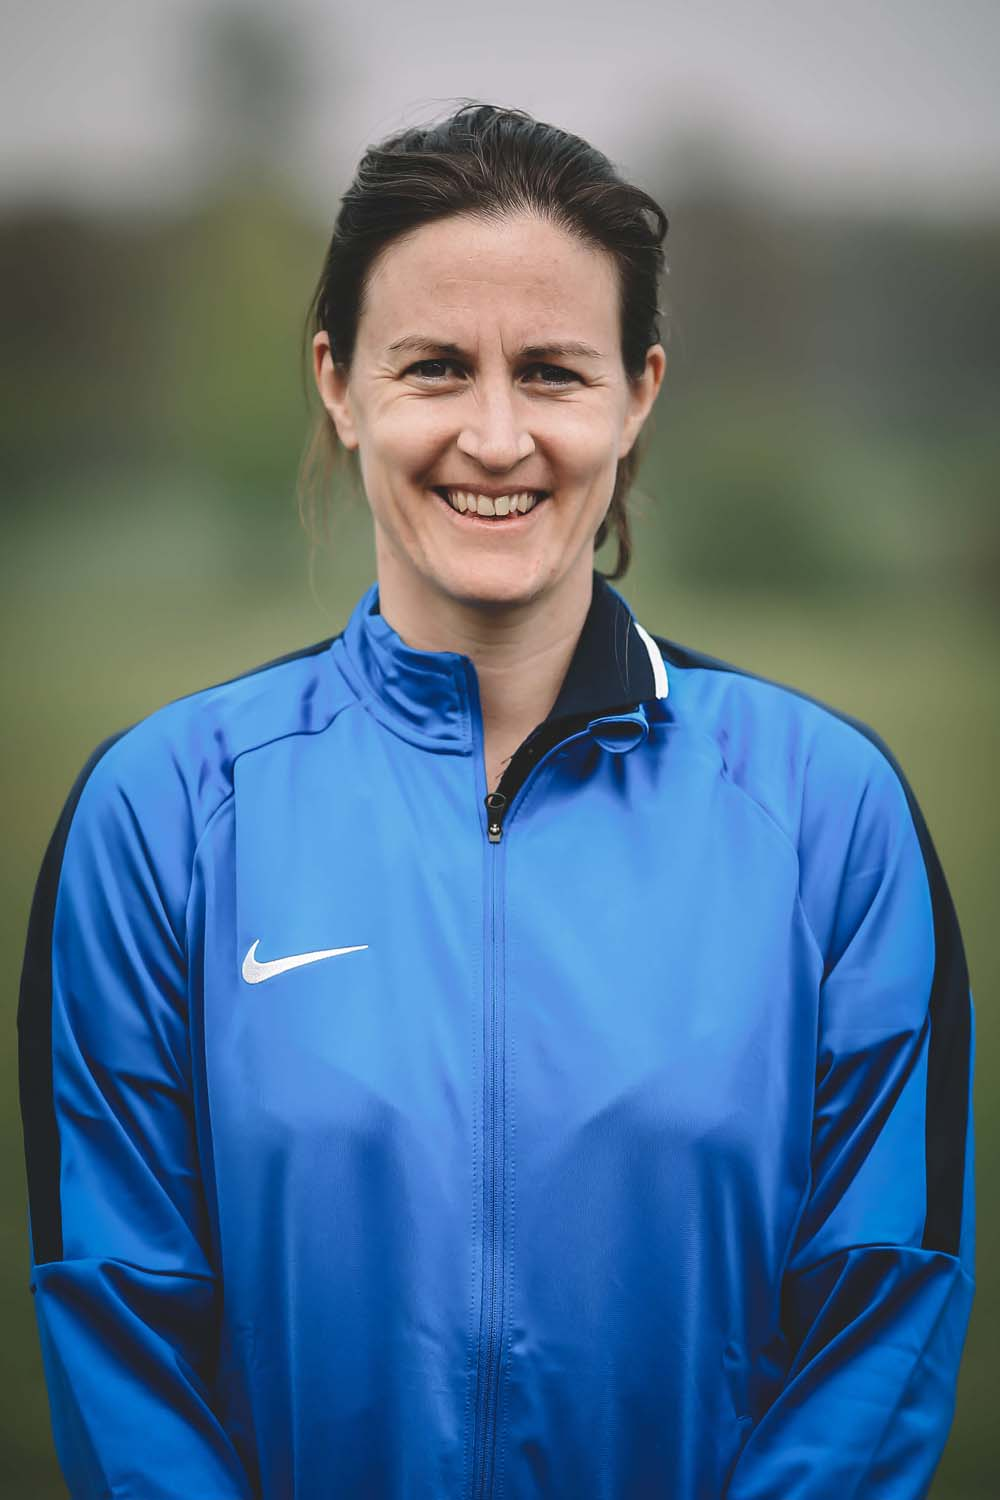 Lydia Greenway head coach headshot